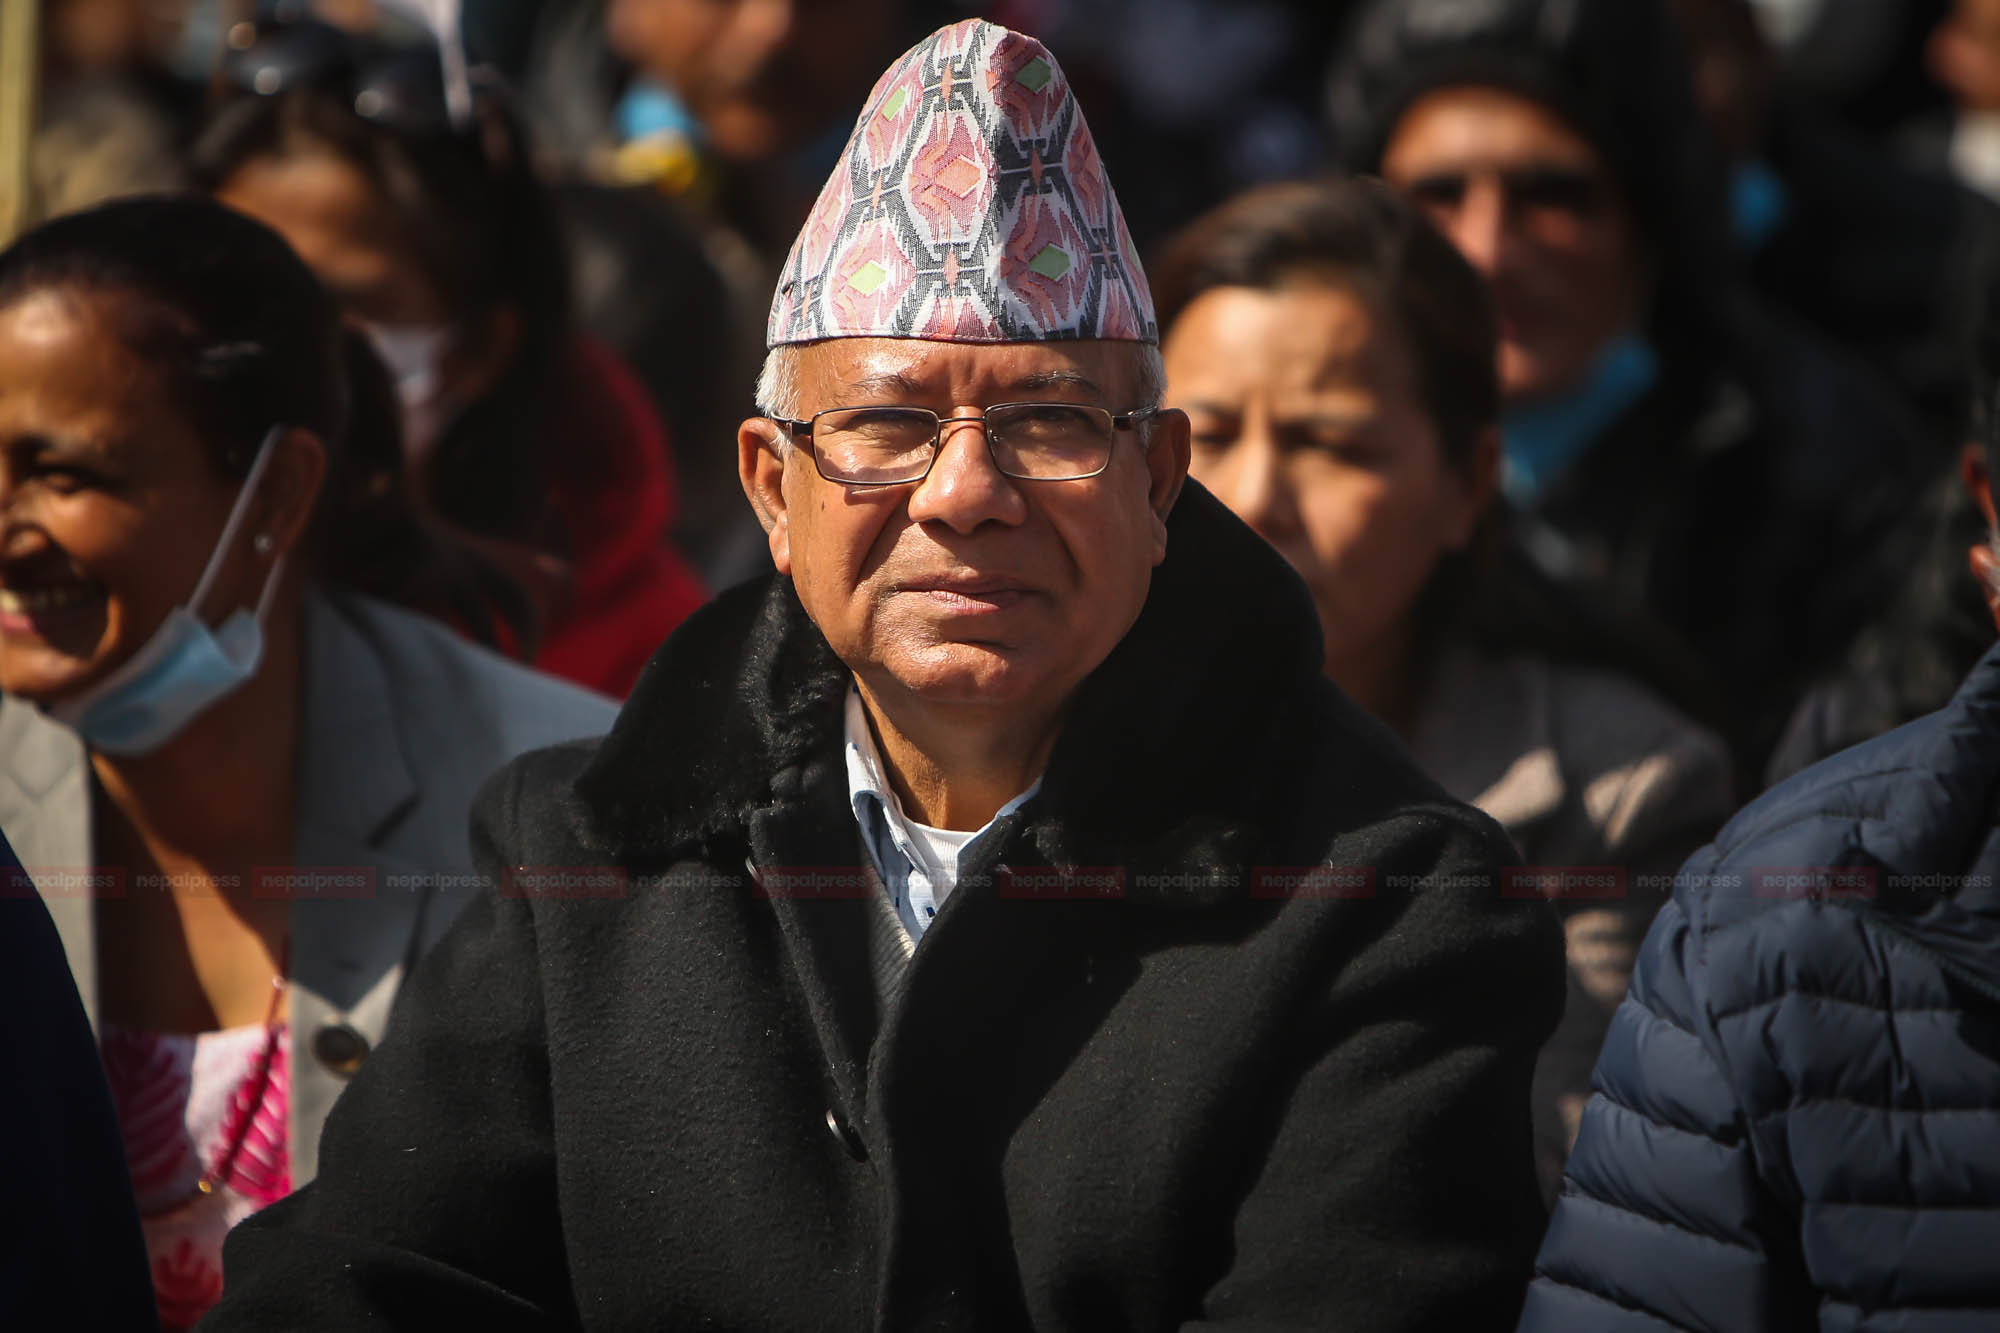 Inclination of leaders towards Baluwatar increasing, Madhav Nepal's fatigue growing